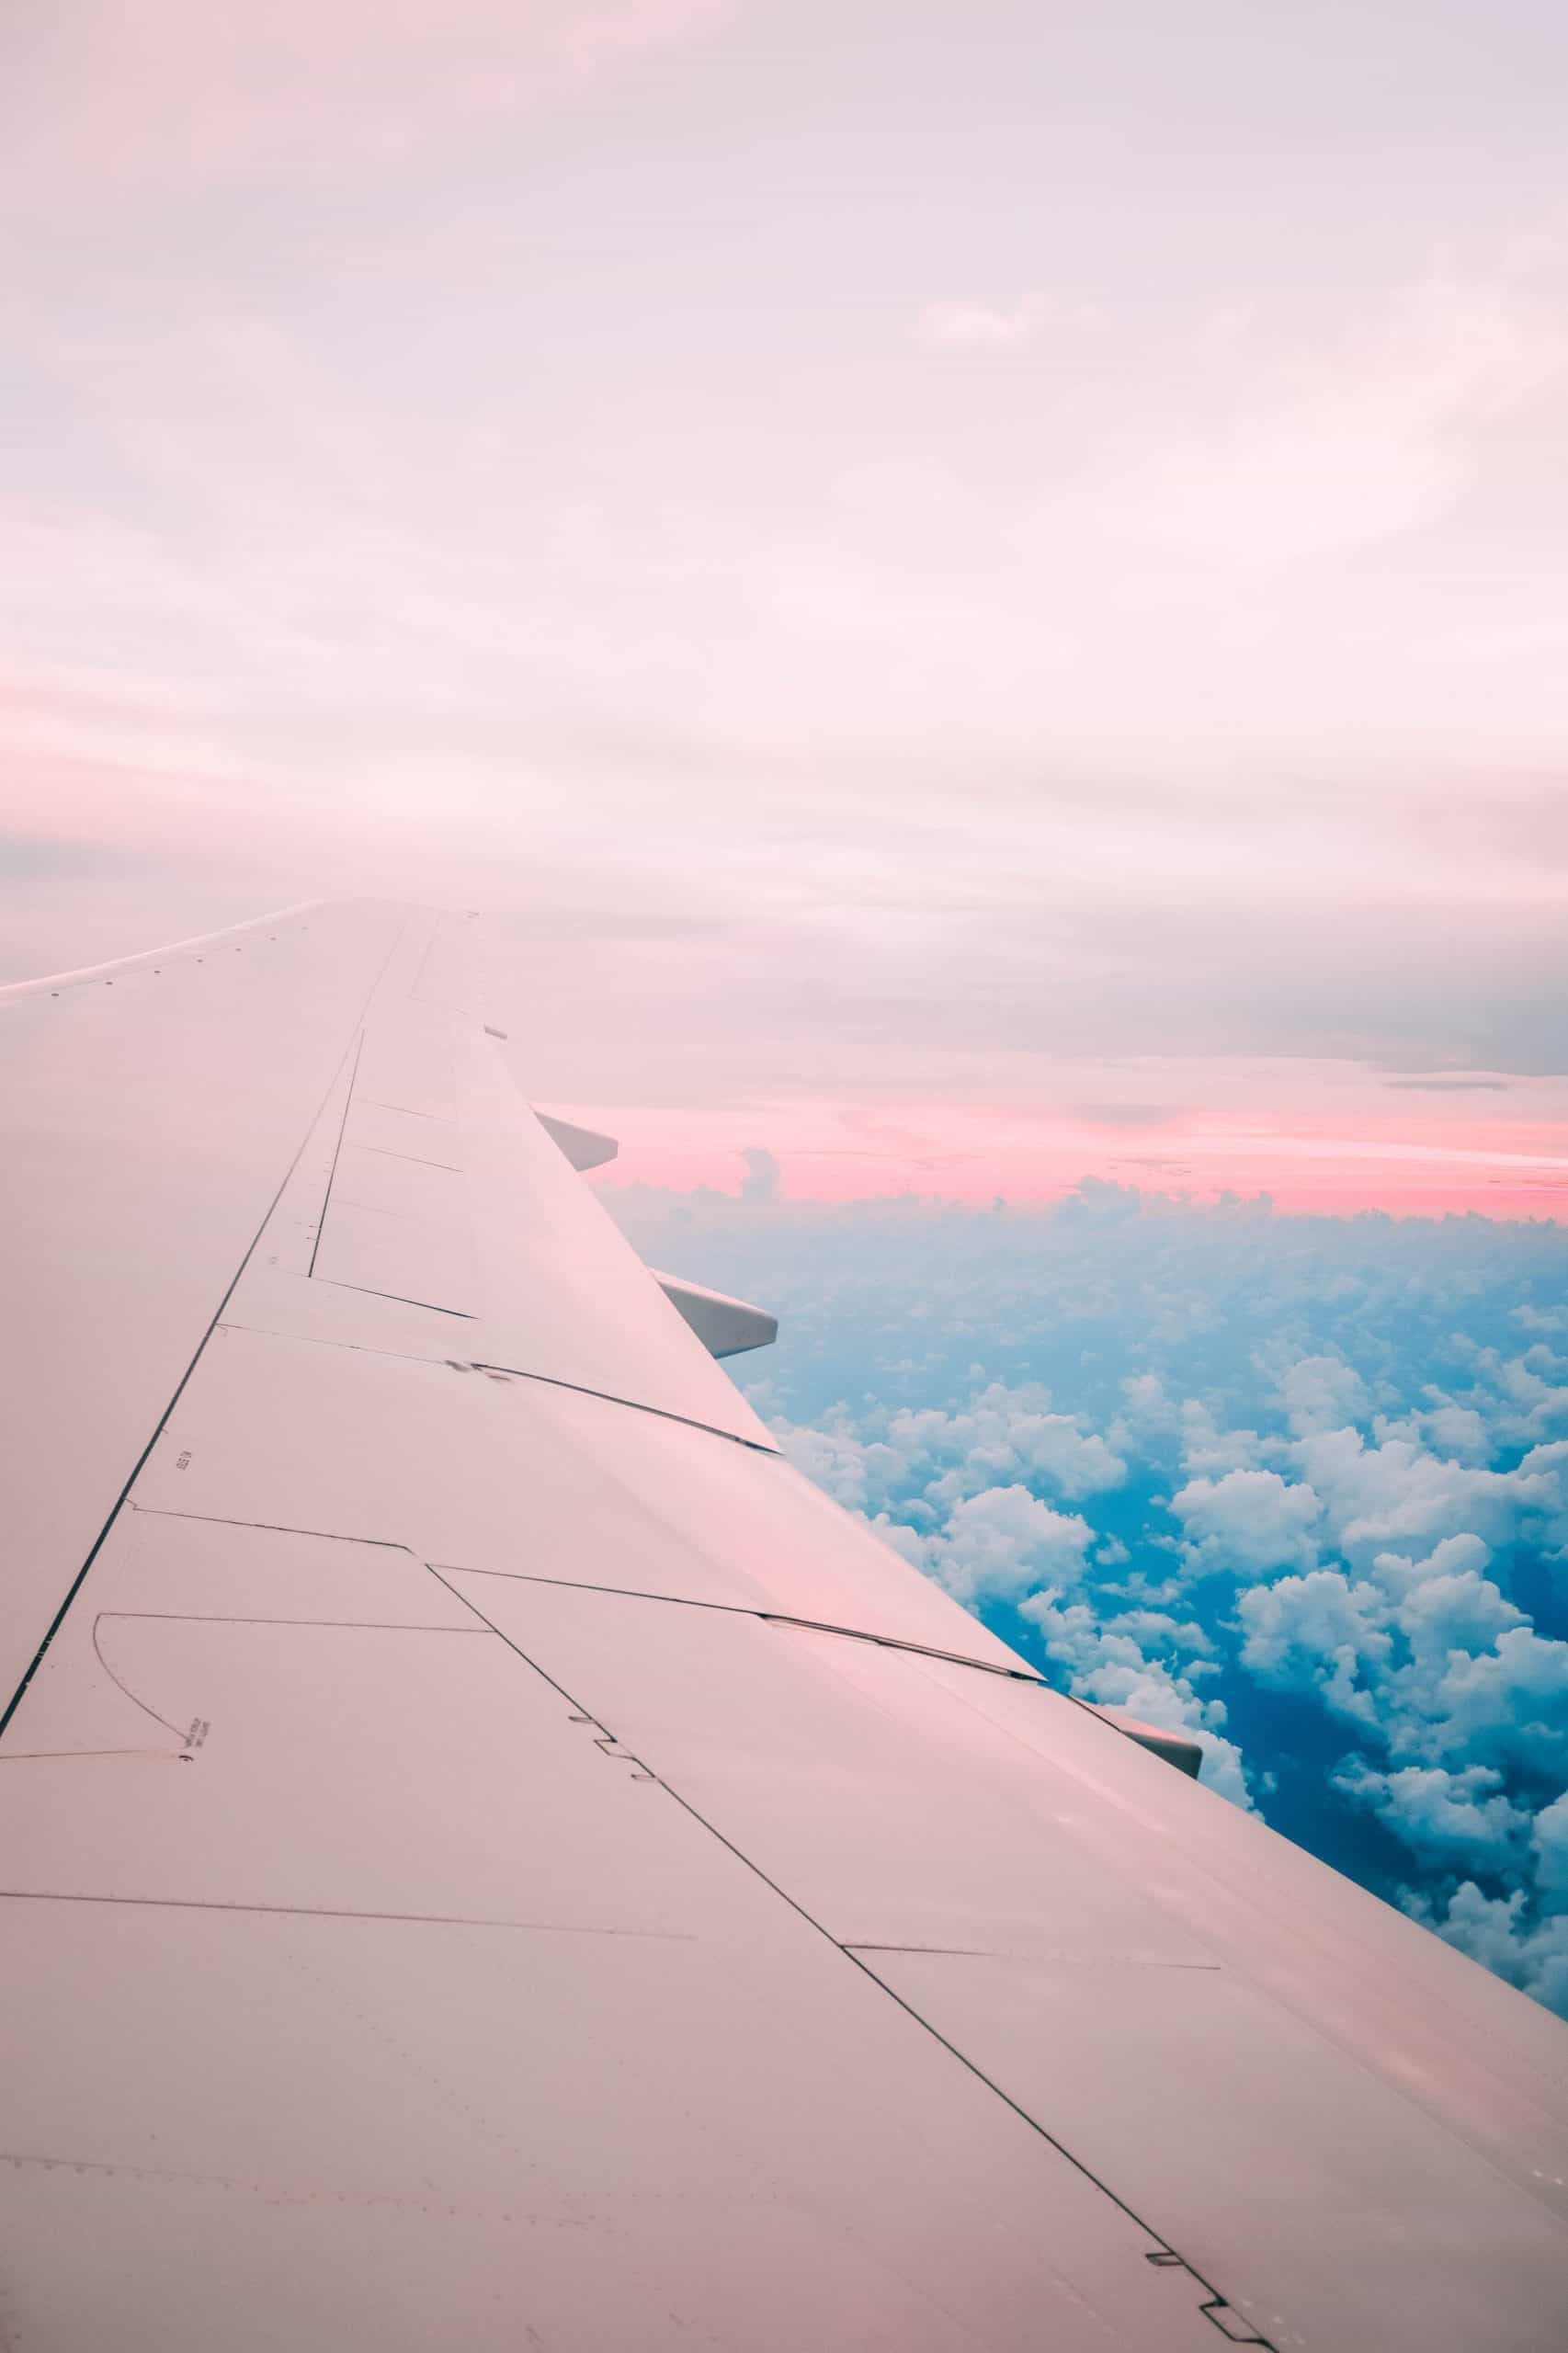 view through the window of a plane. The wing is central to the image, and colored pink, reflecting the early-morning light